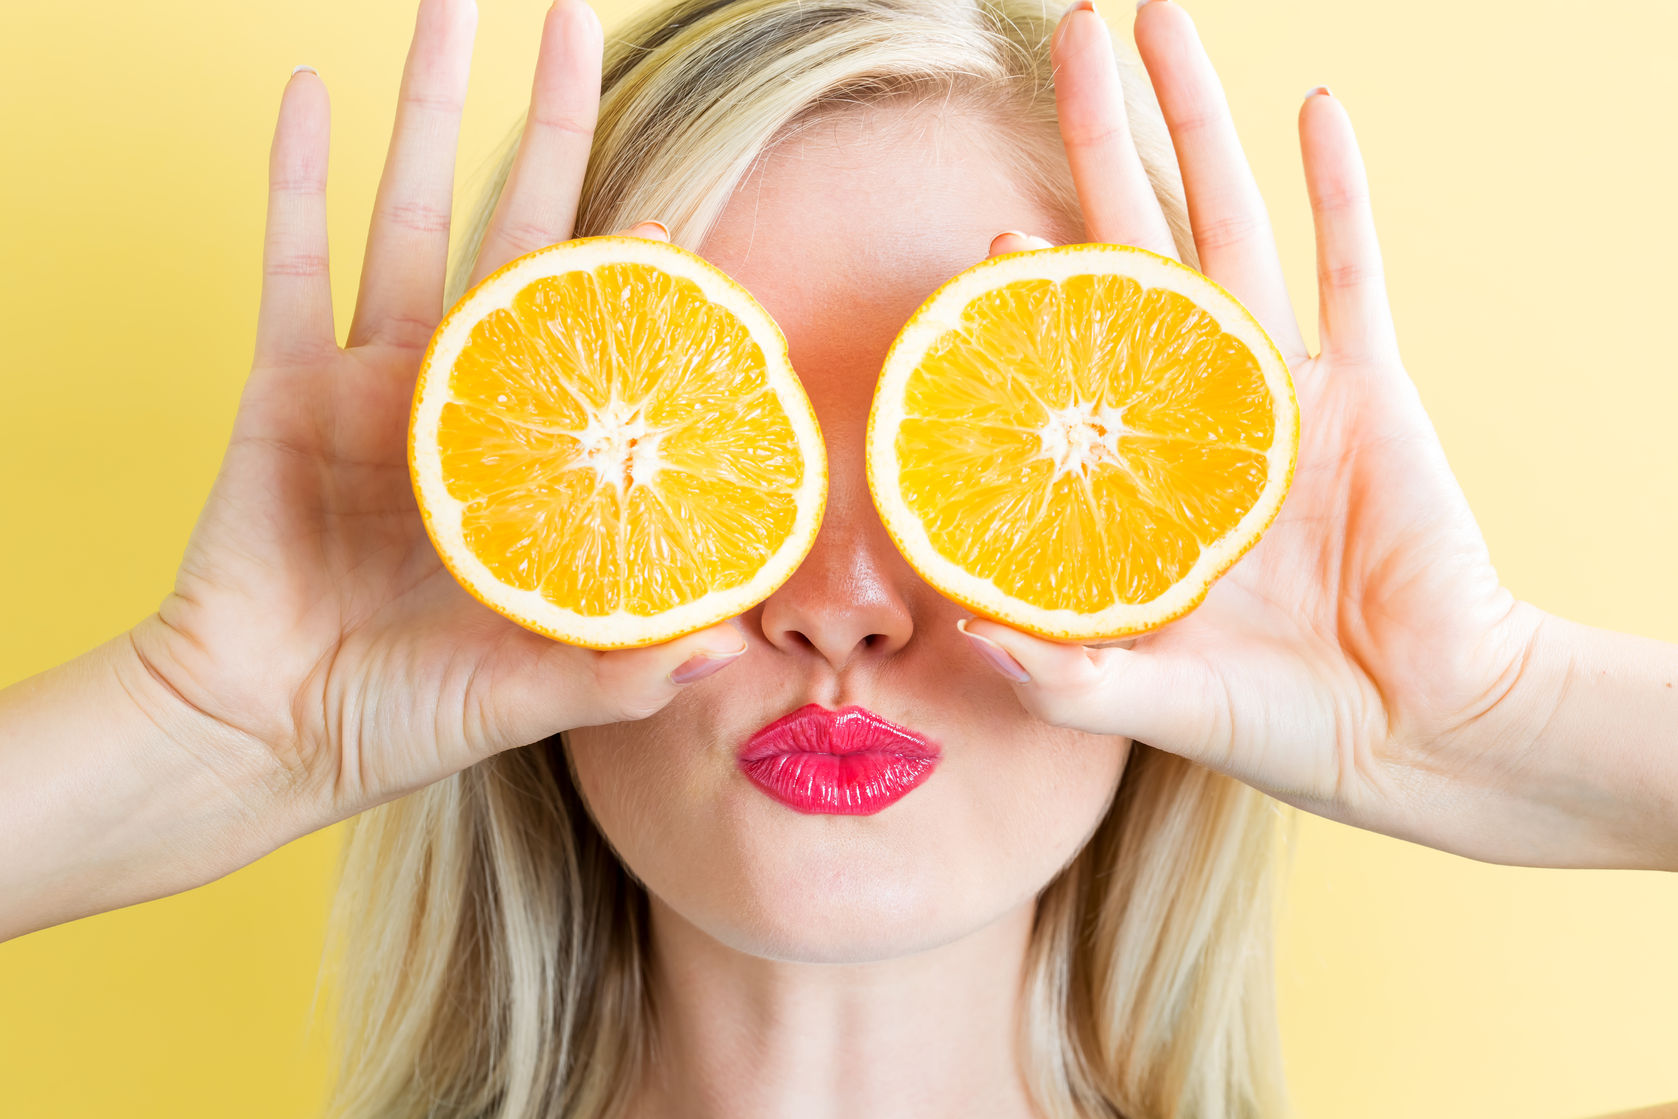 63993742 - happy young woman holding oranges on a yellow background